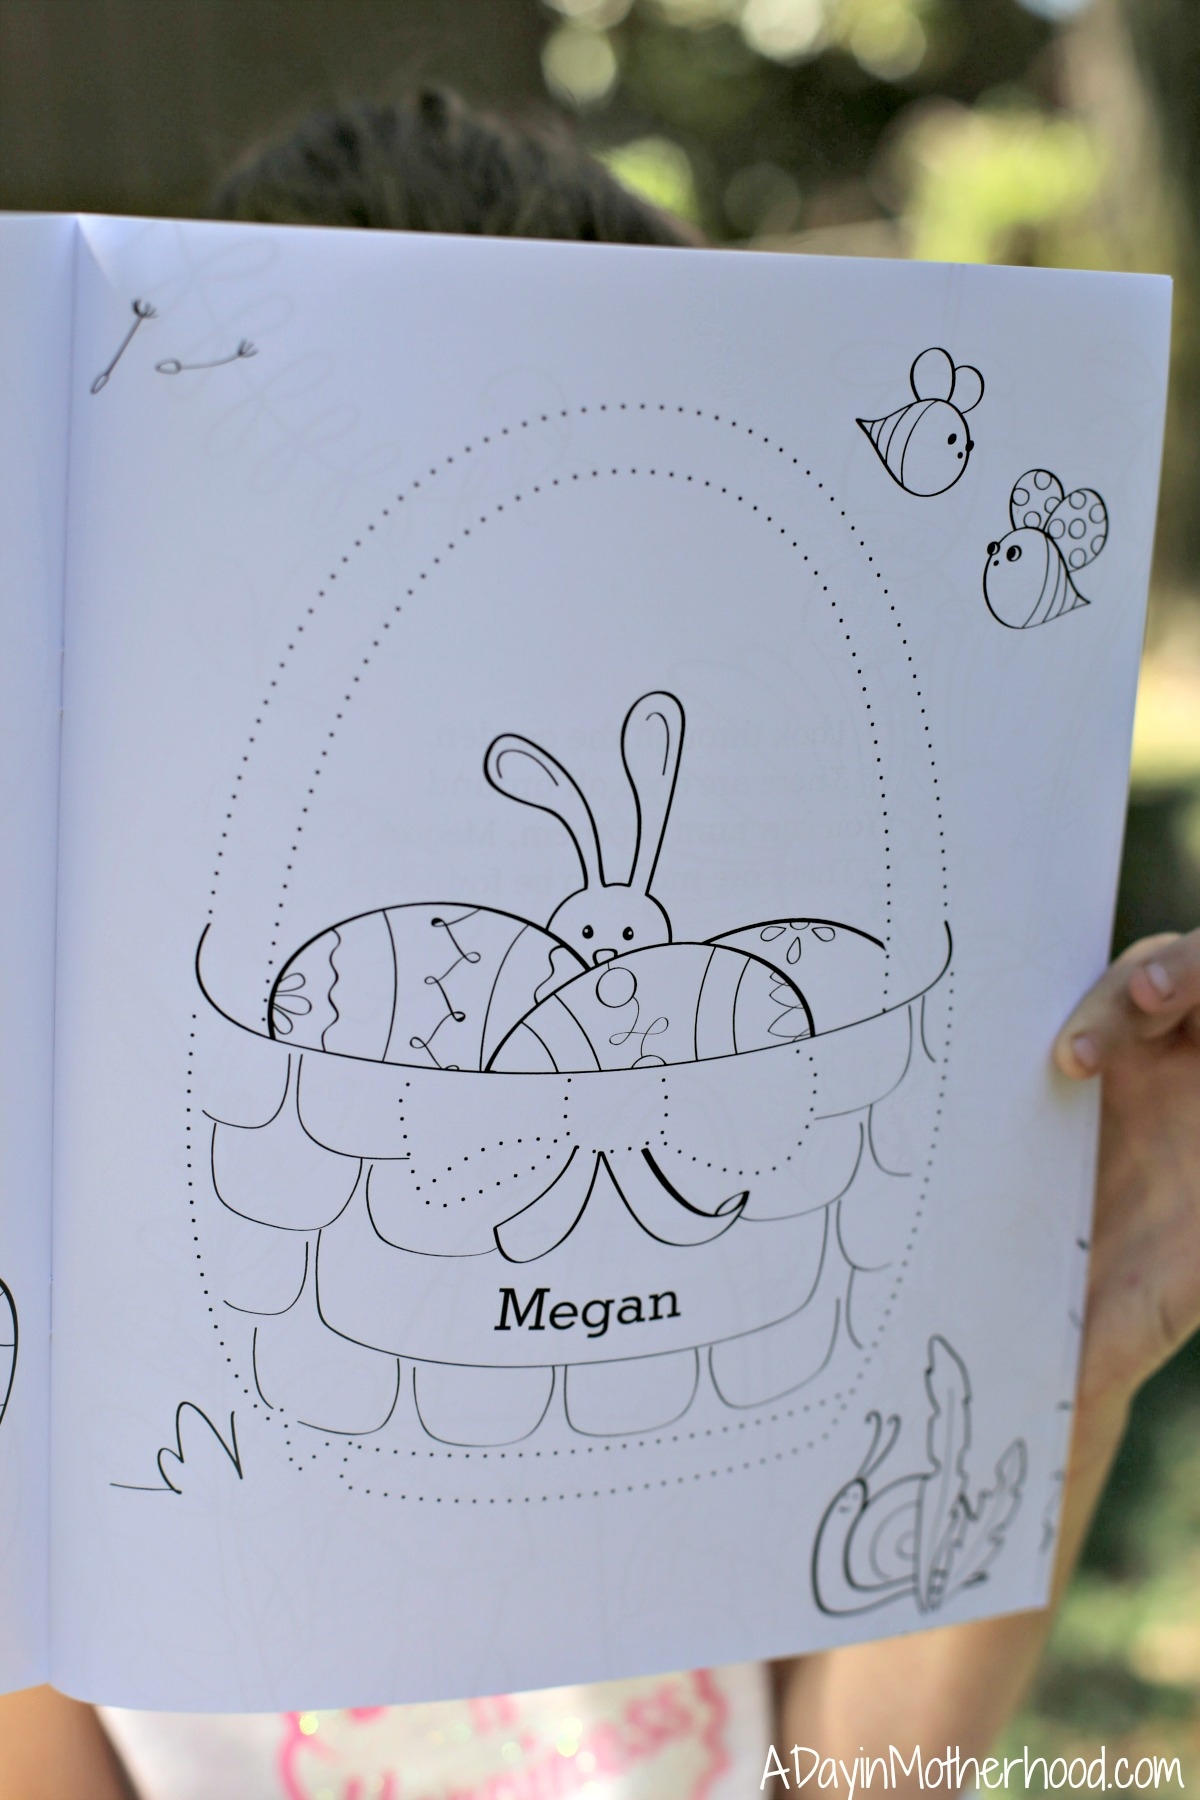 Personalize Easter with I See Me! coloring book